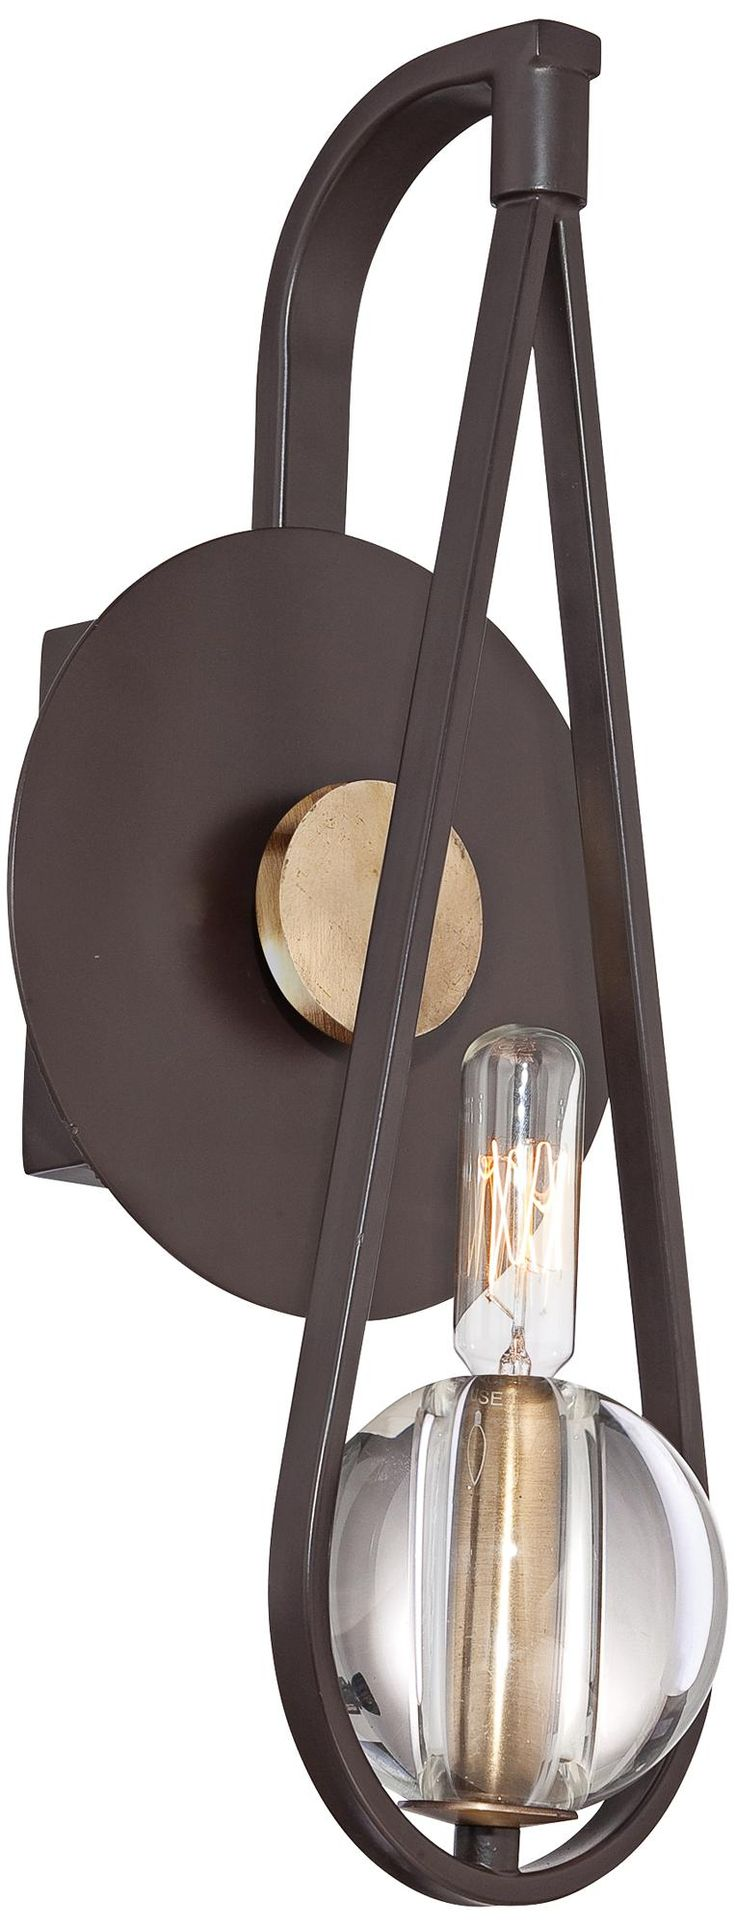 Chloe loft industrial 2 light oil rubbed bronze wall sconce free - Quoizel Uptown Seaport 15 High Bronze Wall Sconce